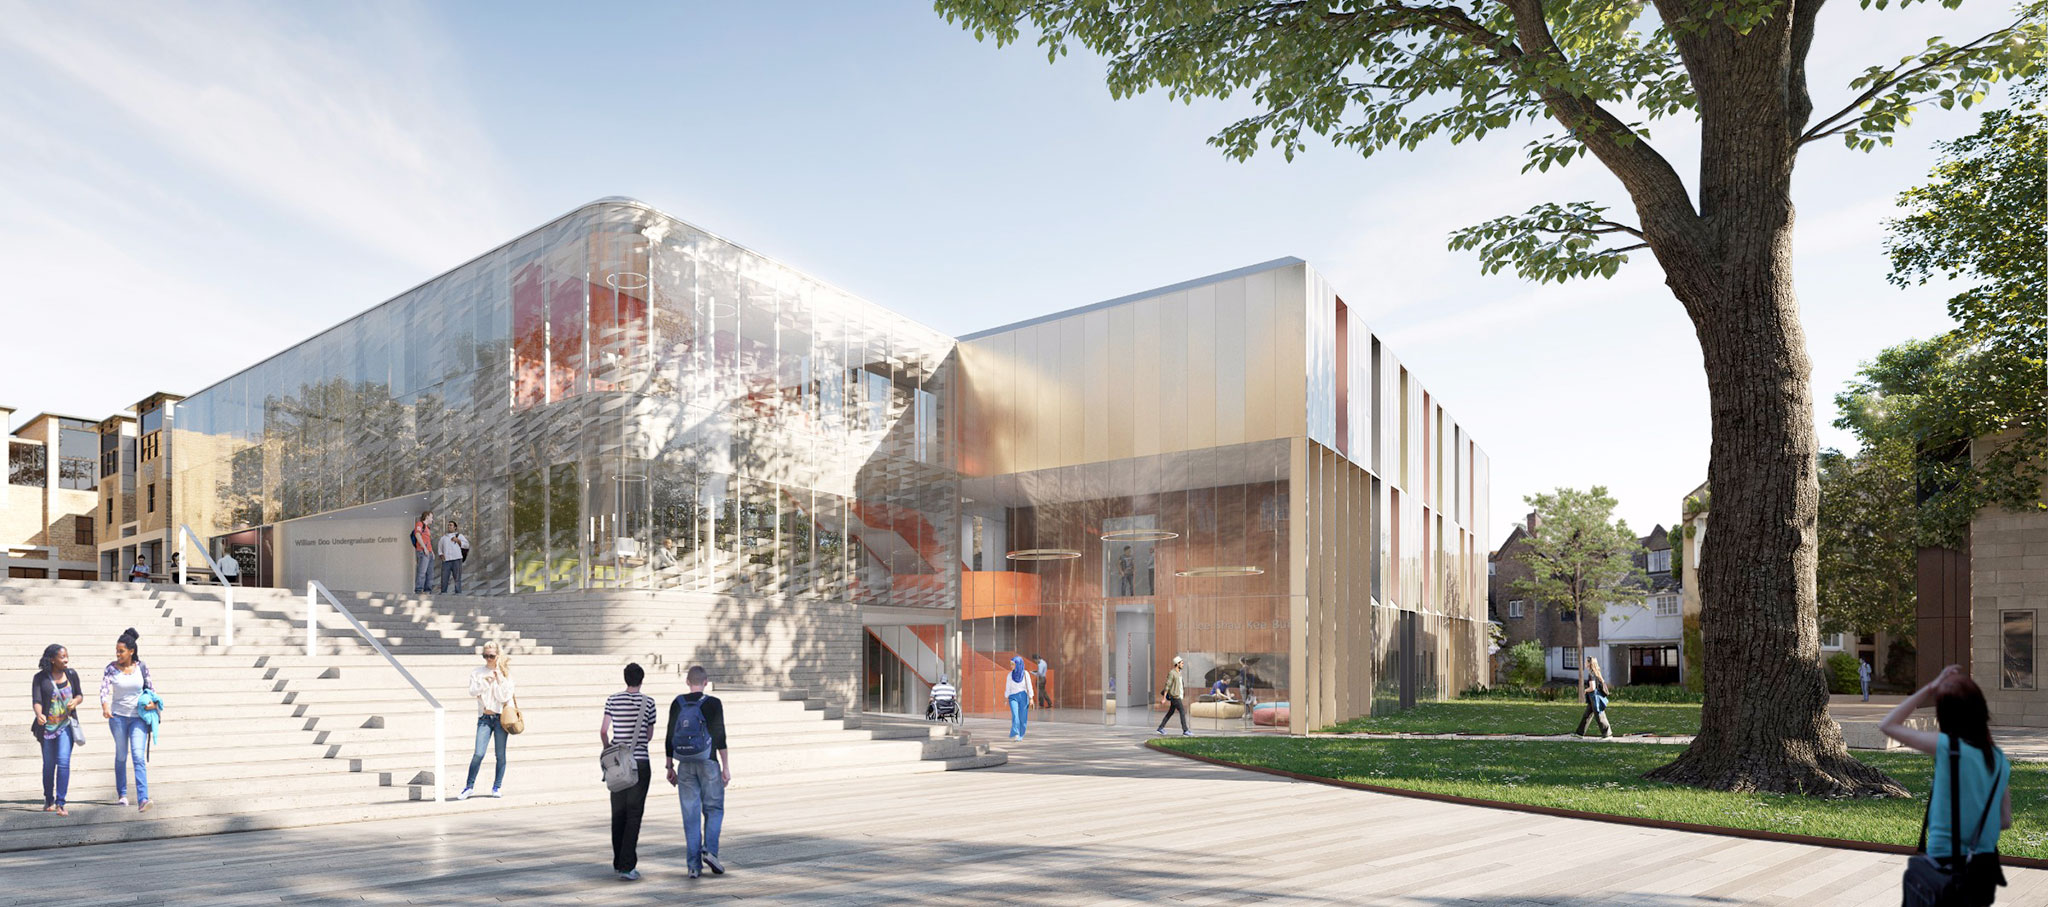 Rendering. Oxford undergraduate centre by AL_A